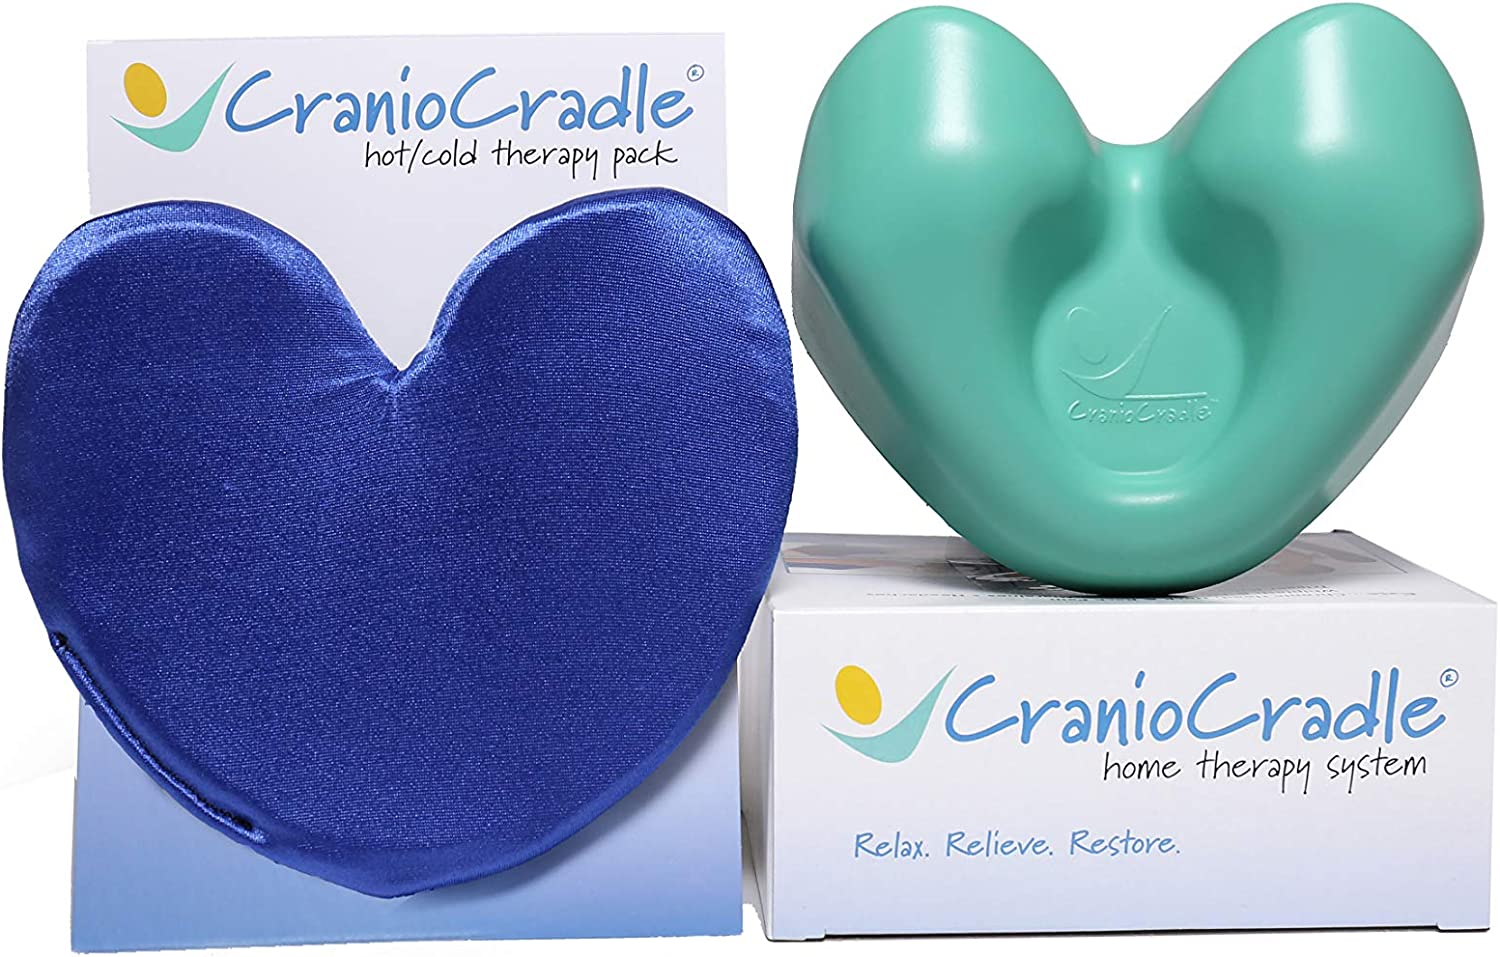 CranioCradle Home Therapy System Hot/Cold Therapy Pack - Quality Neck, Back, Shoulder - Soft Tissue Massage, Trigger Point Relief, Myofascial Release & Physical Therapy